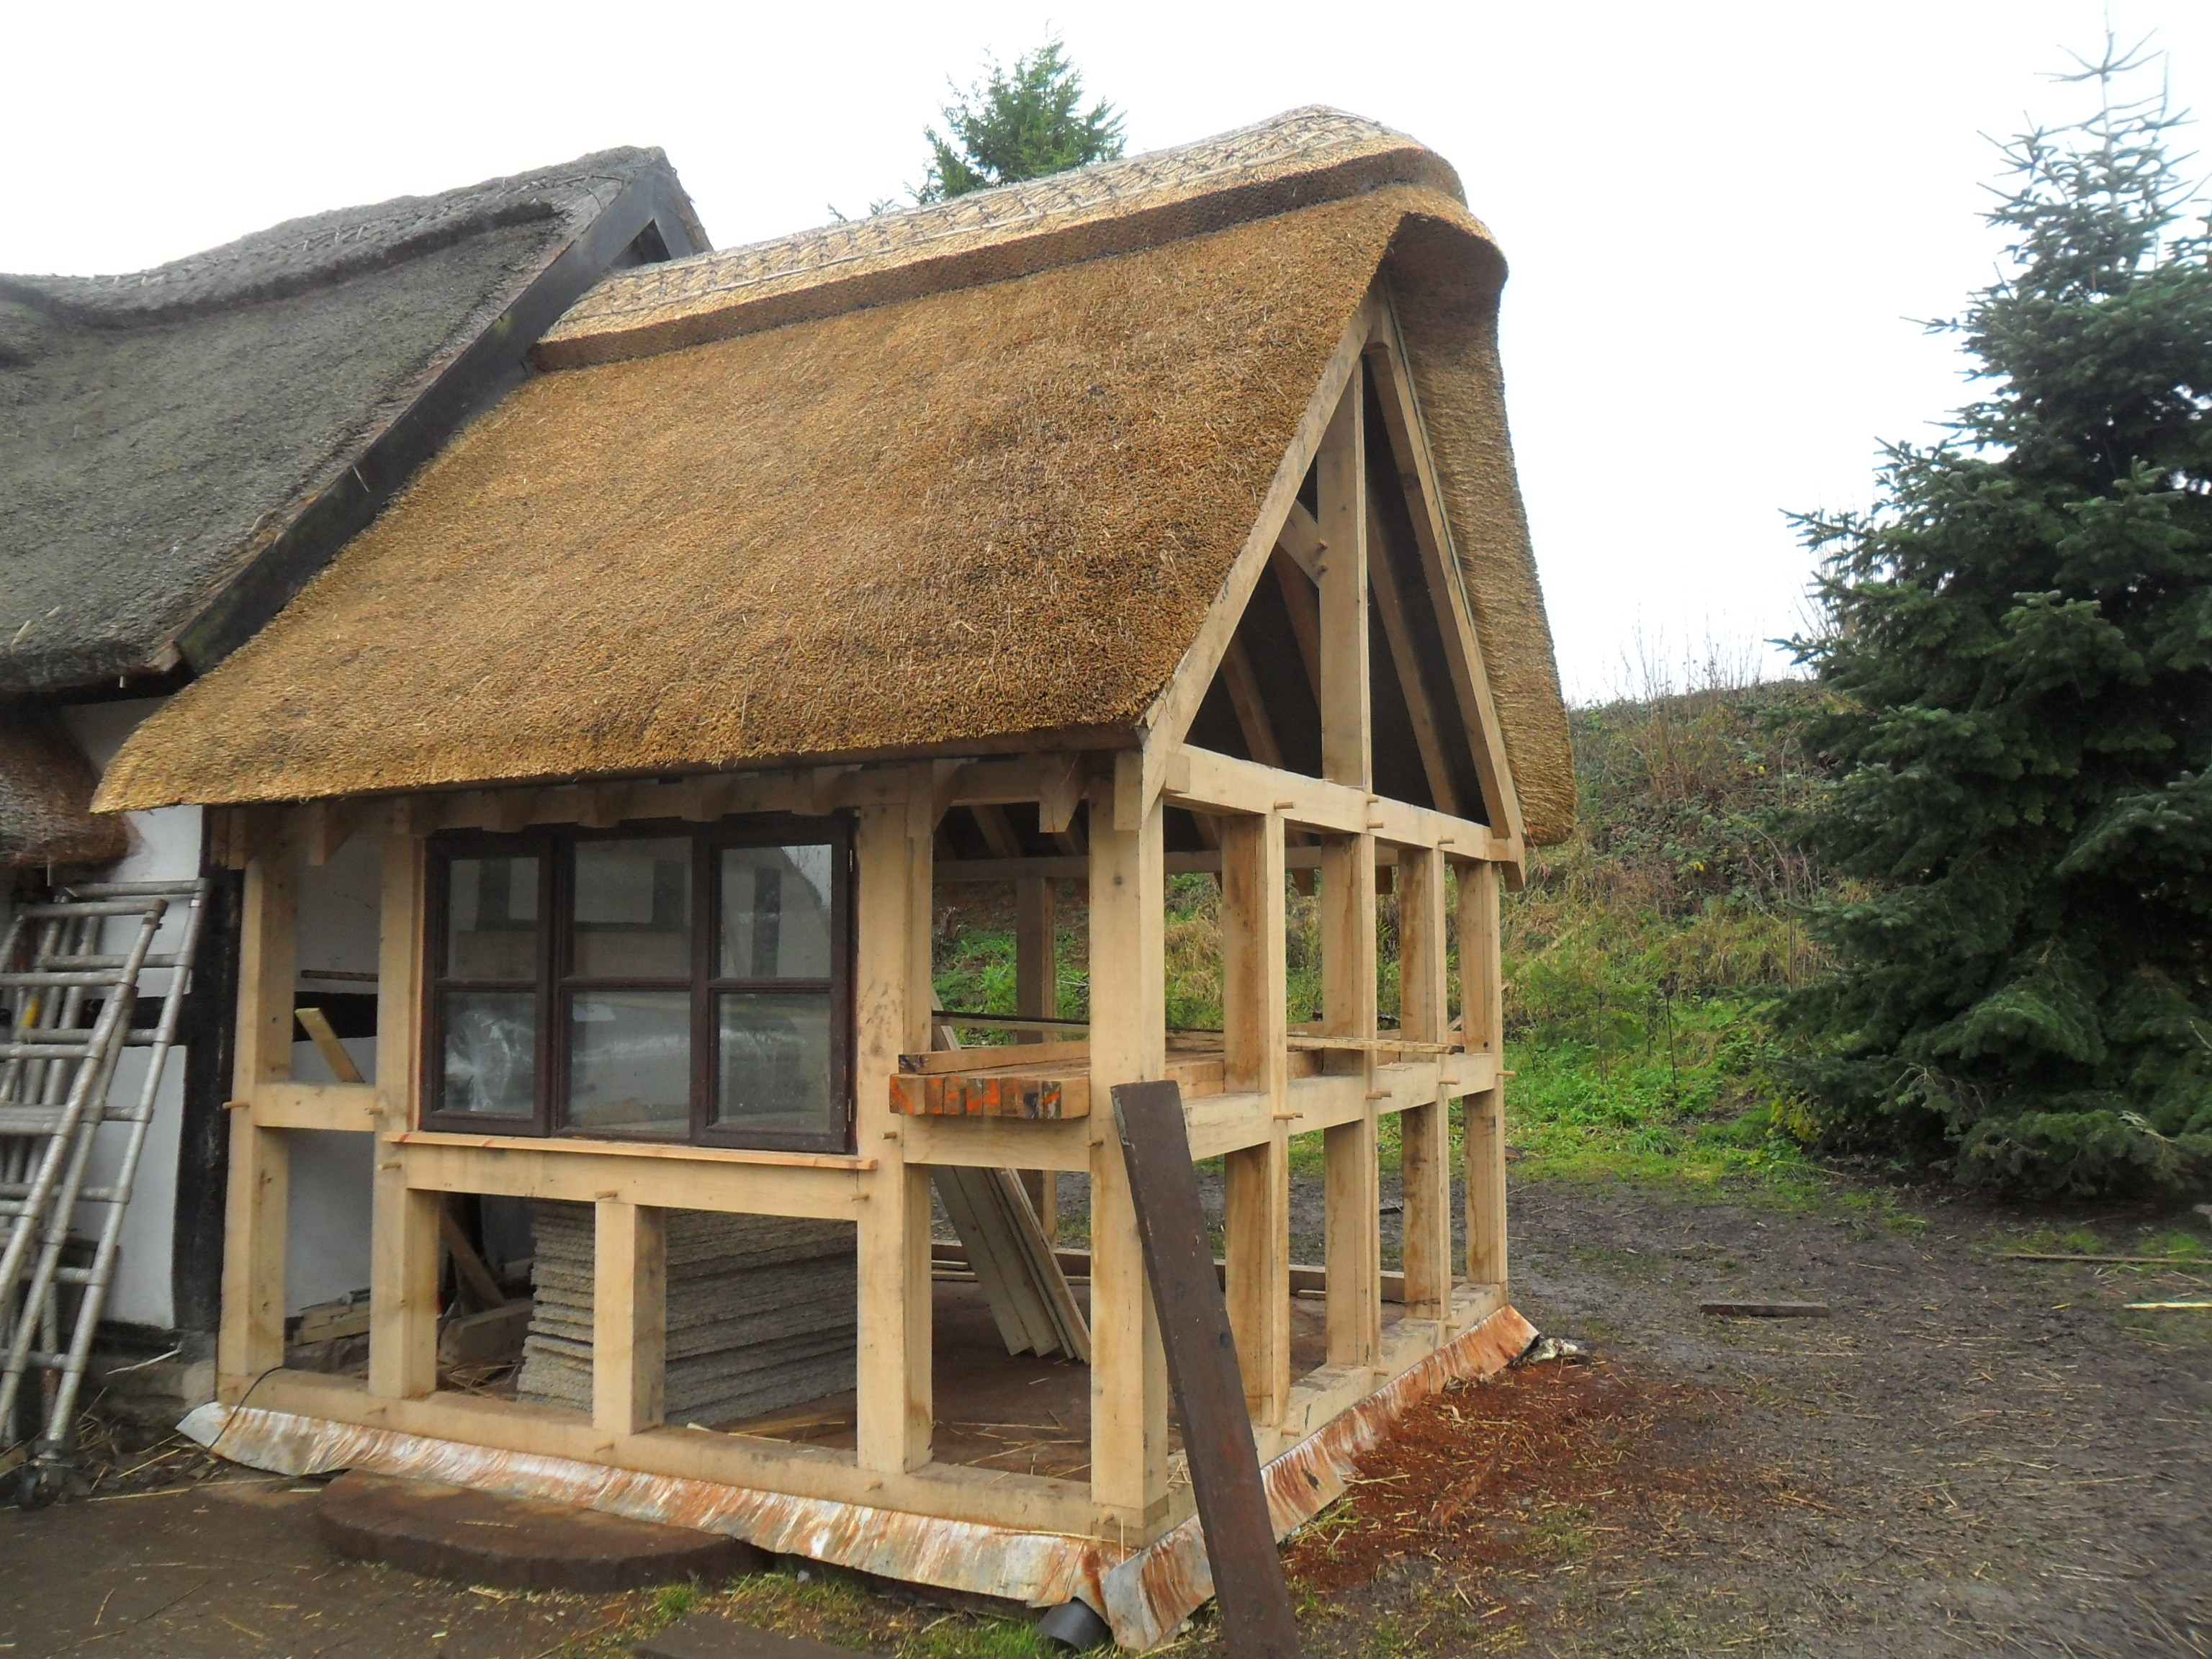 Oak extension for thatch roof